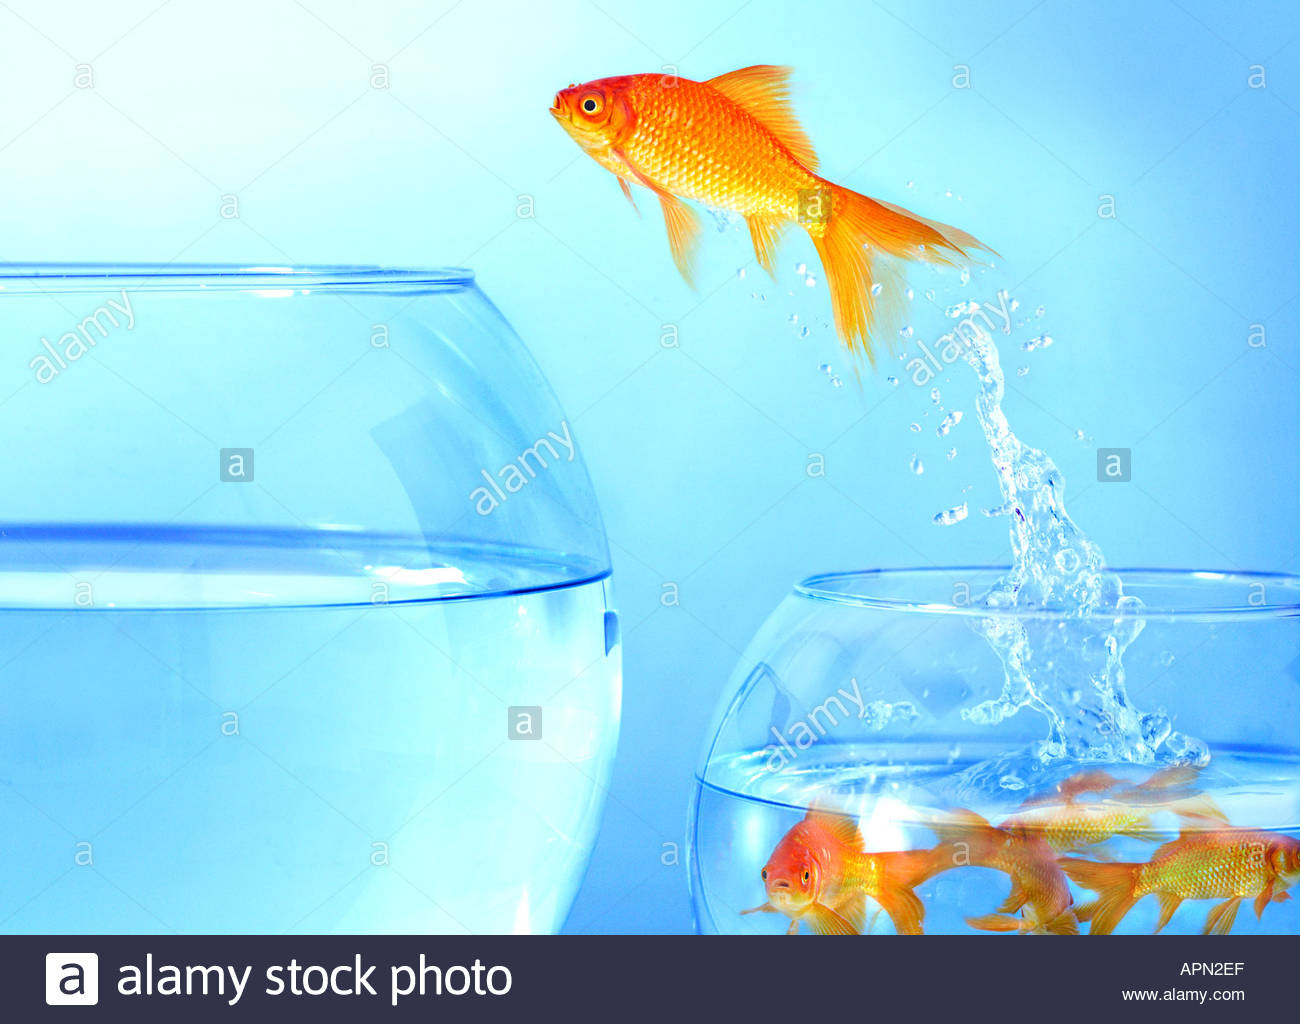 Goldfish jumping from small bowl to large bowl stock photo for Small fish bowl